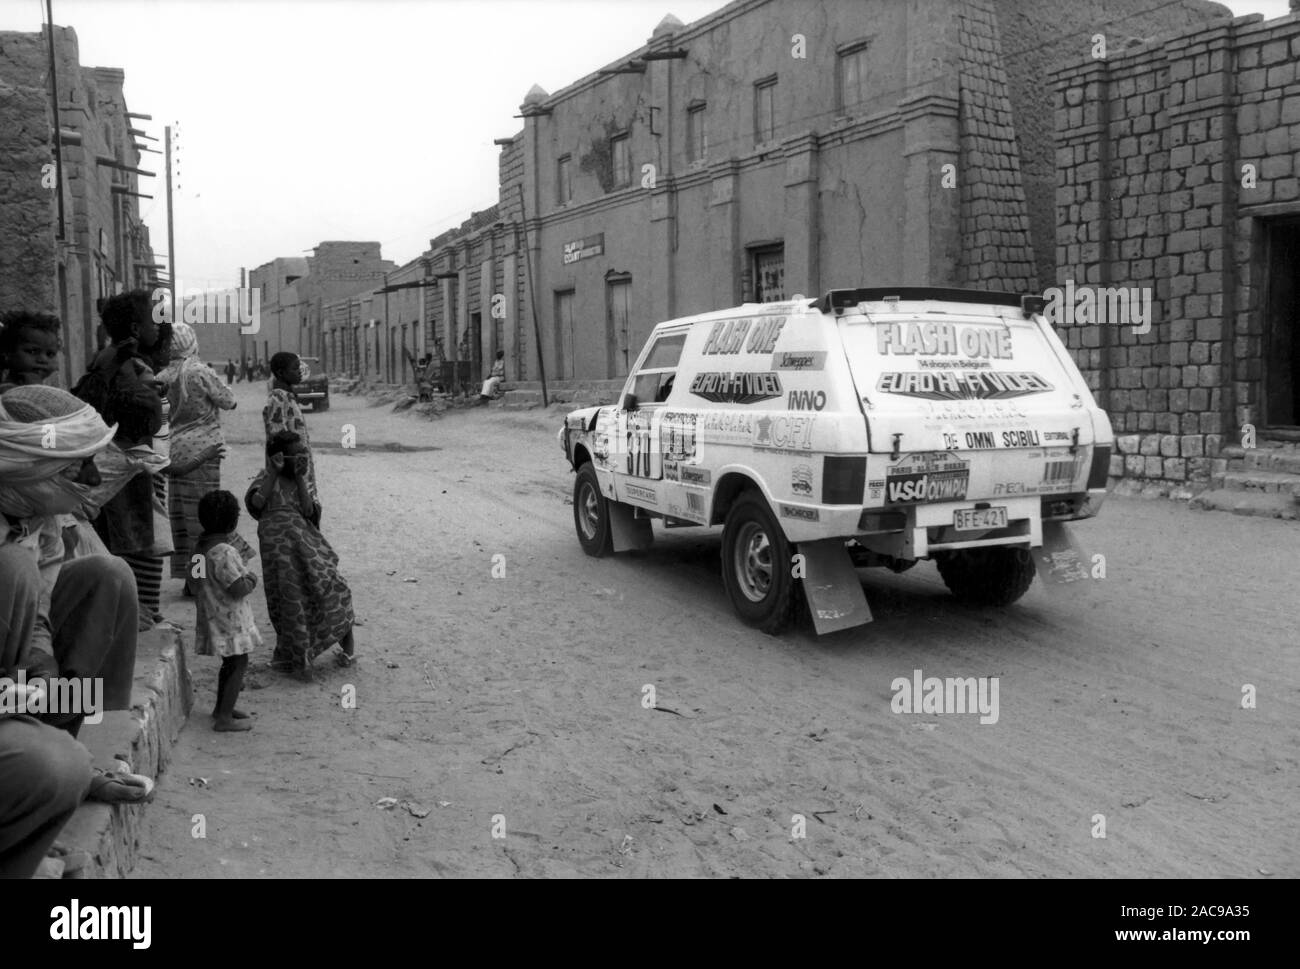 Gérard MARCY / Luc JANSSENS - RANGE ROVER V8, Paris Alger Dakar 1985 - Crossing Tombouctou - Mali Stock Photo